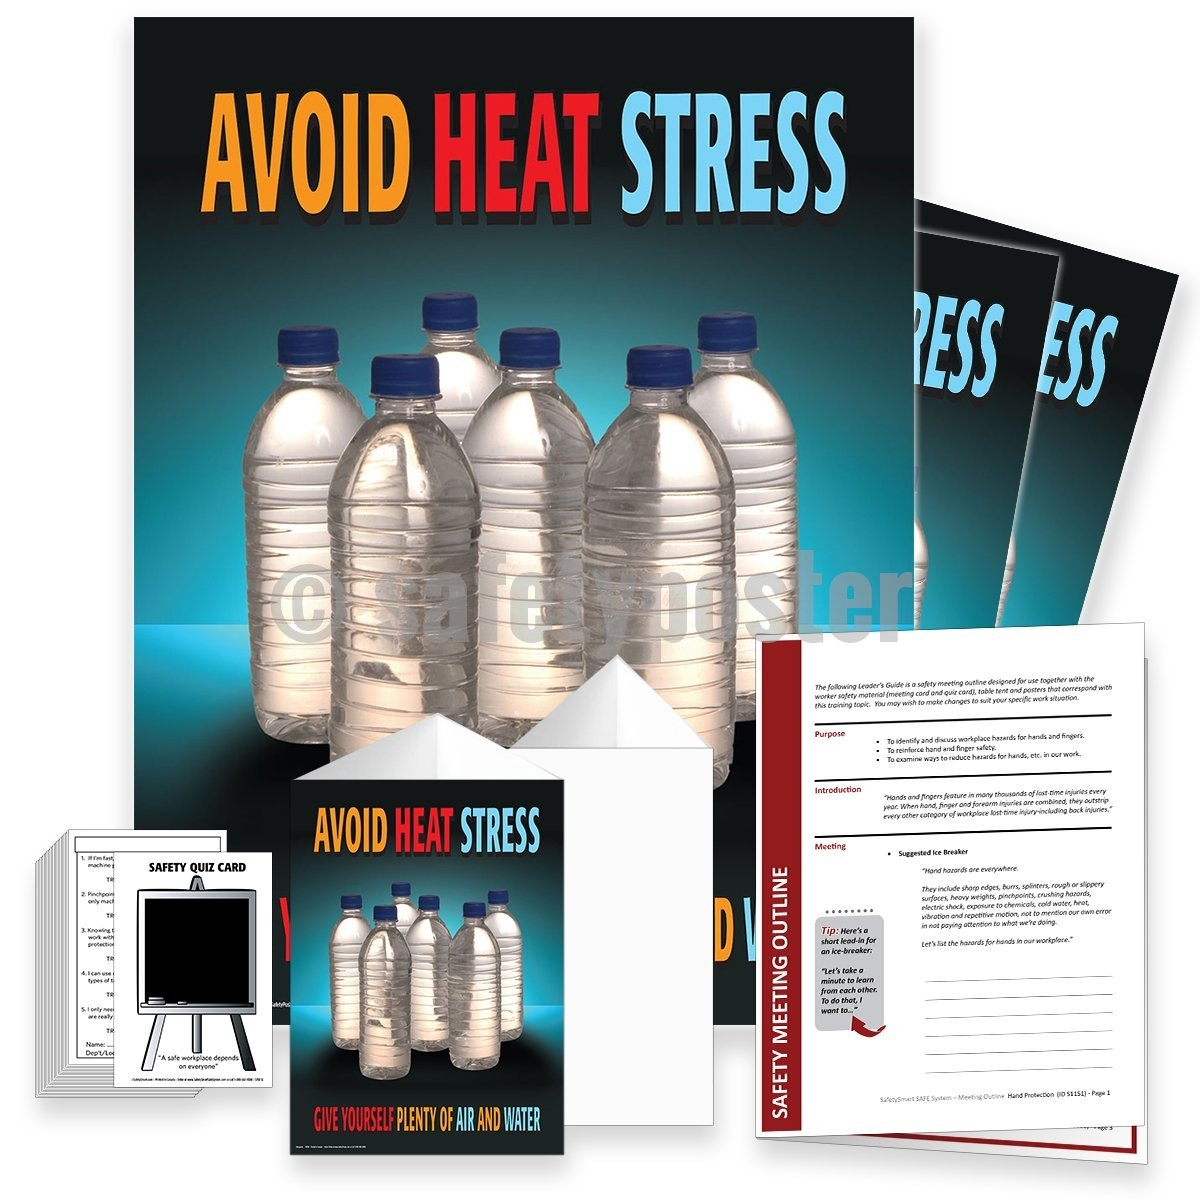 Safety Meeting Kit - Avoid Heat Stress Bottles Kits